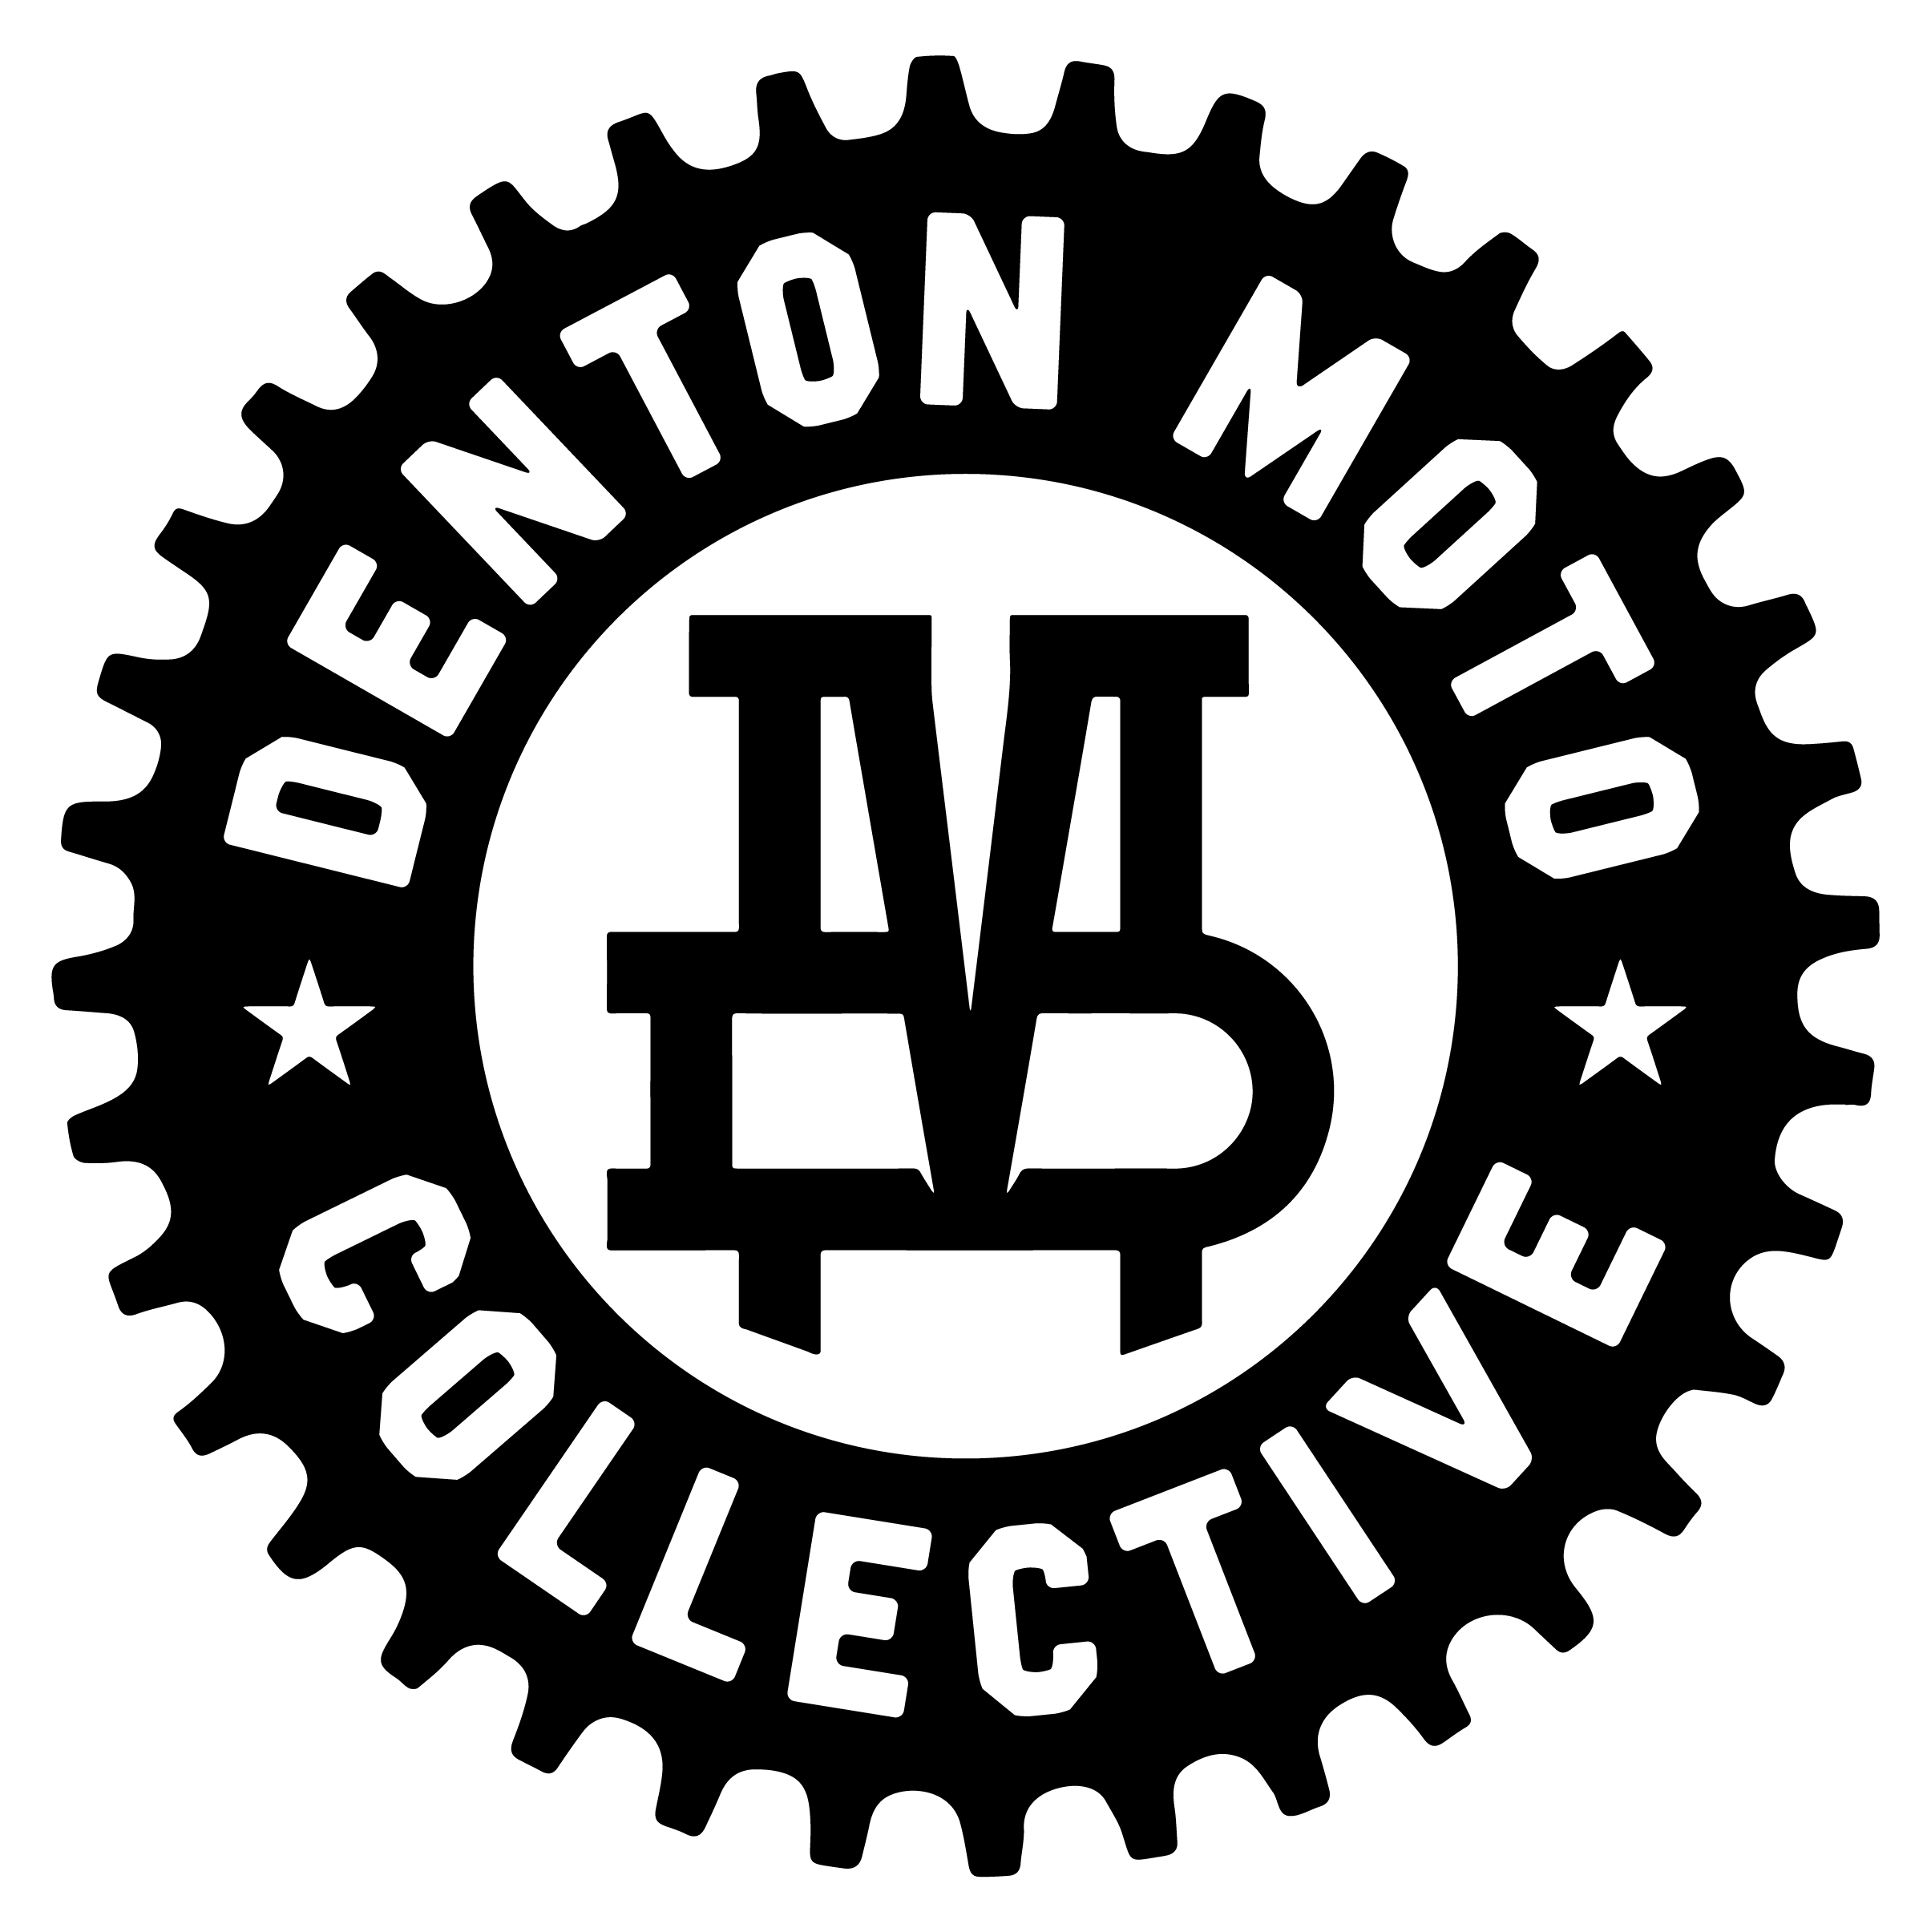 denton-moto-logo(knocked out white)-02 (2).png